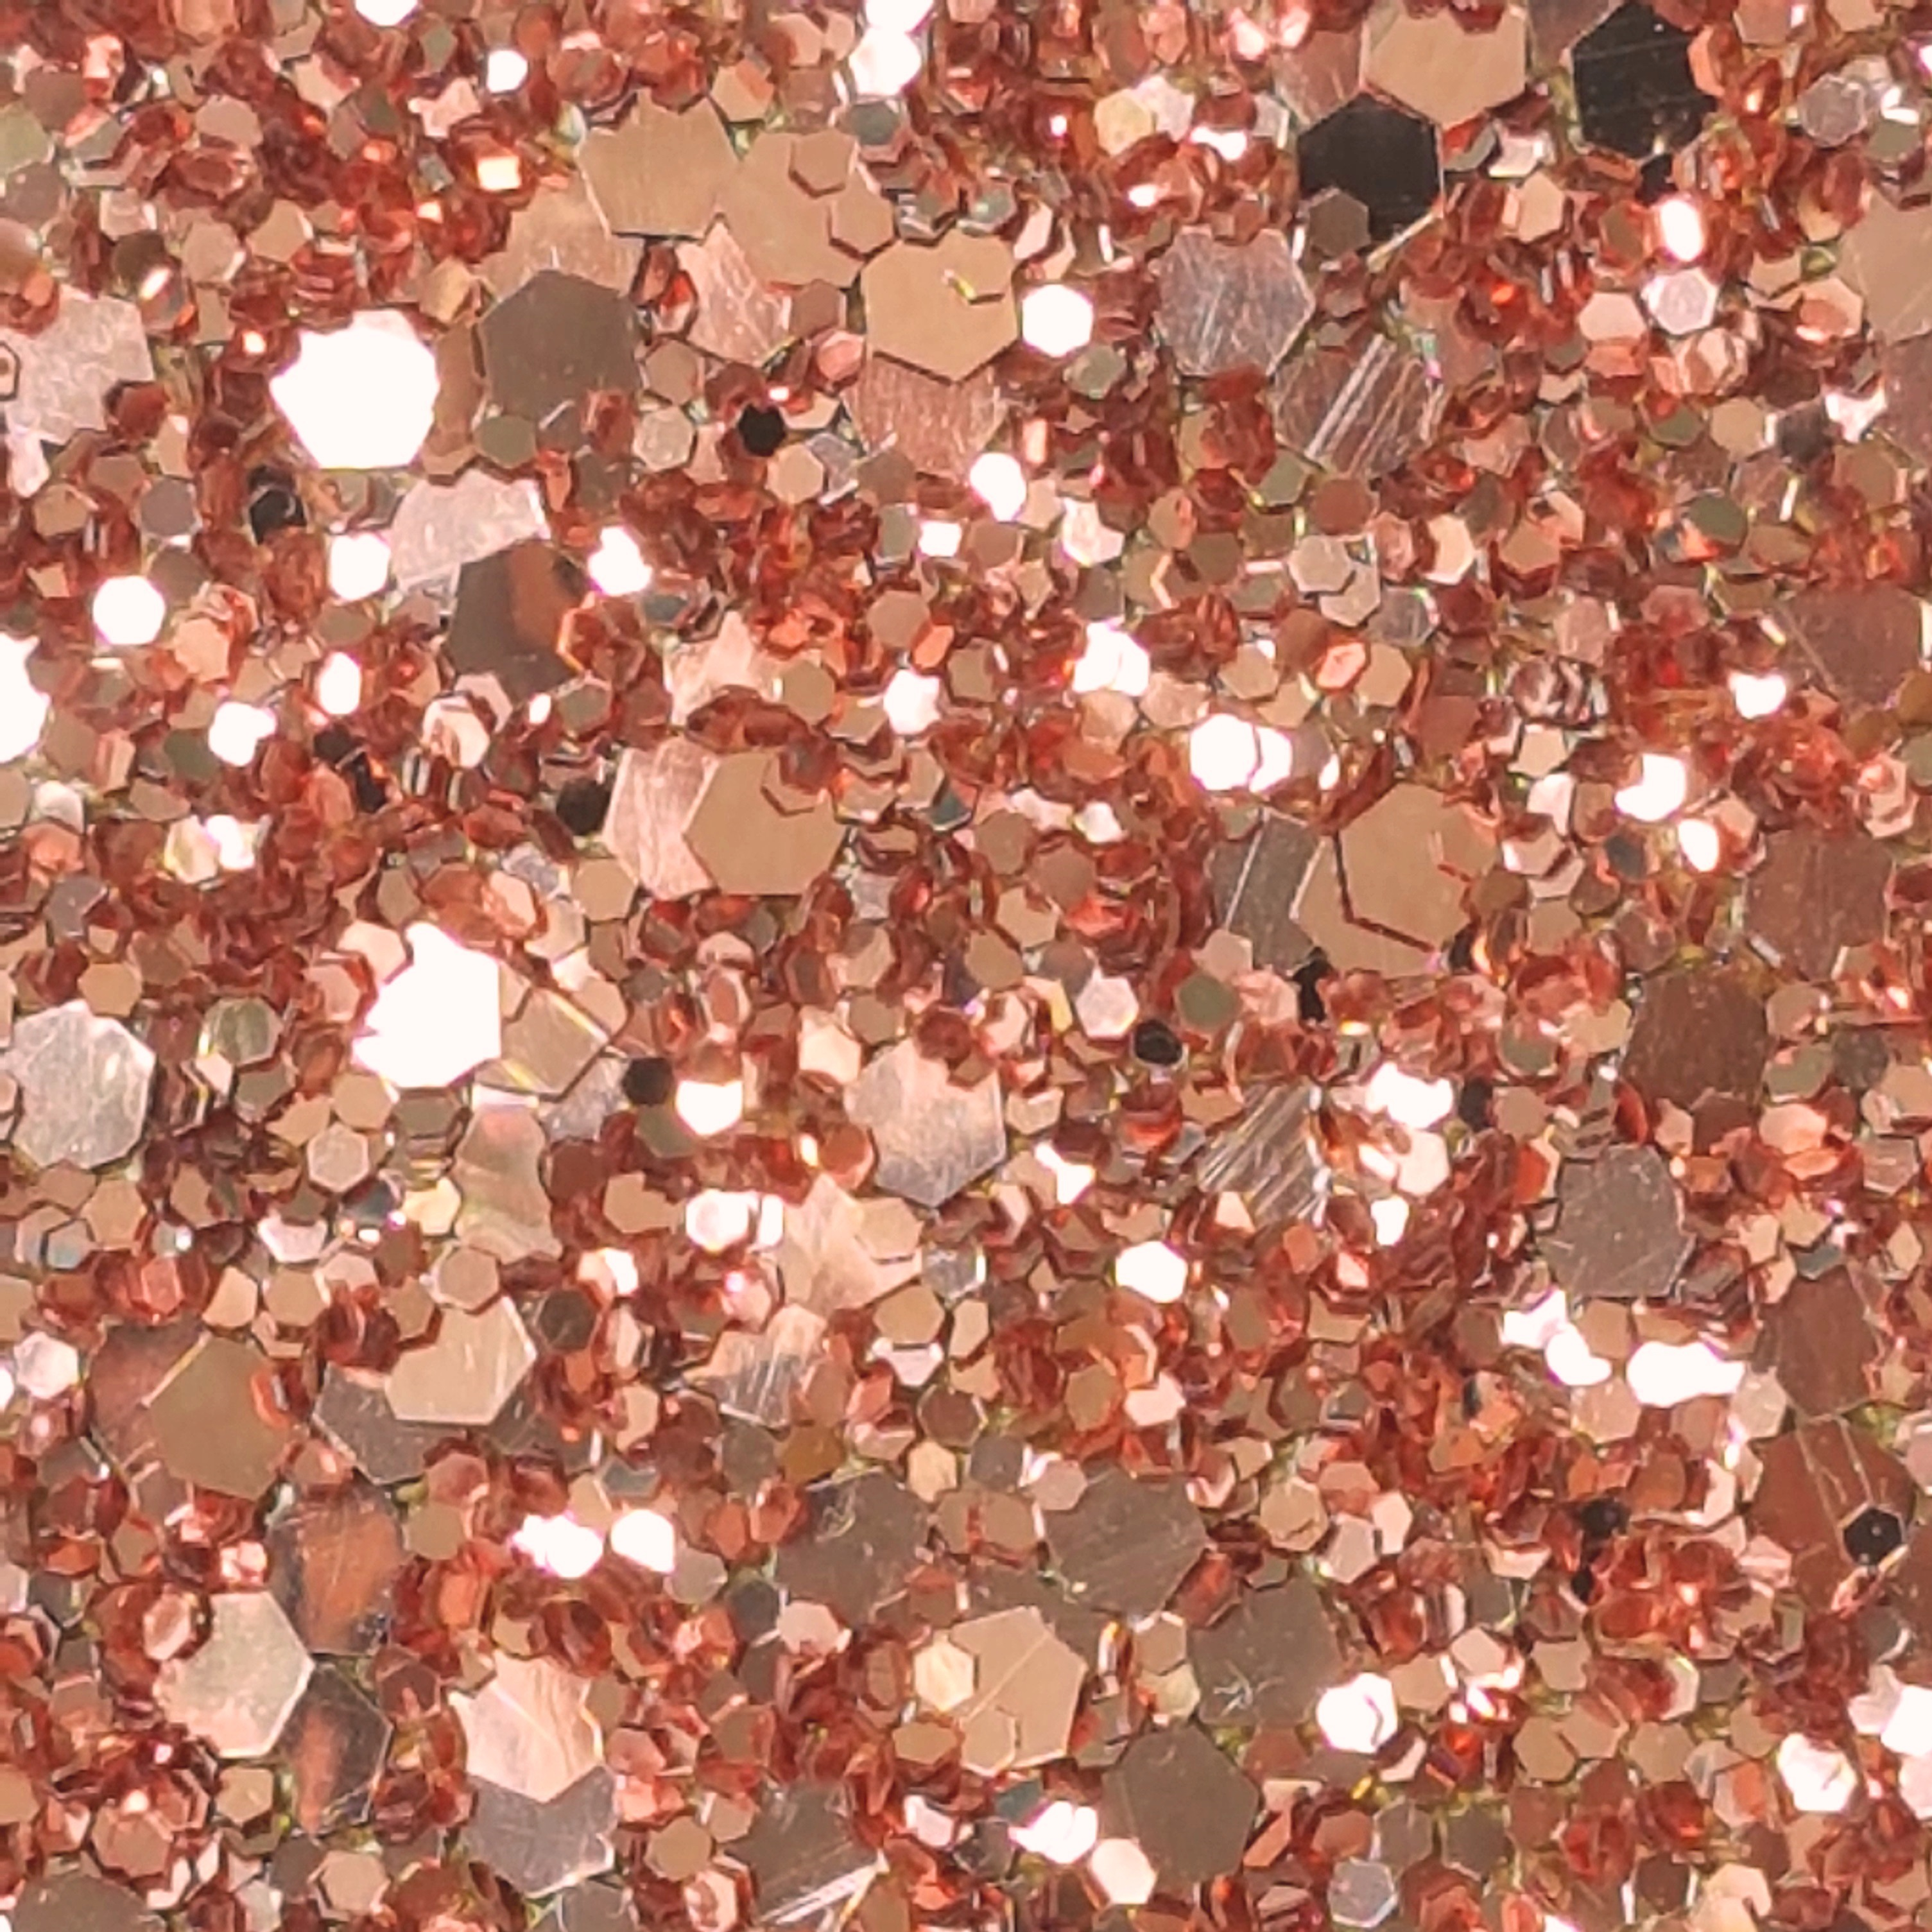 Rose Gold Glitter Glam Wallpaper  Glitter Bug Wallpaper